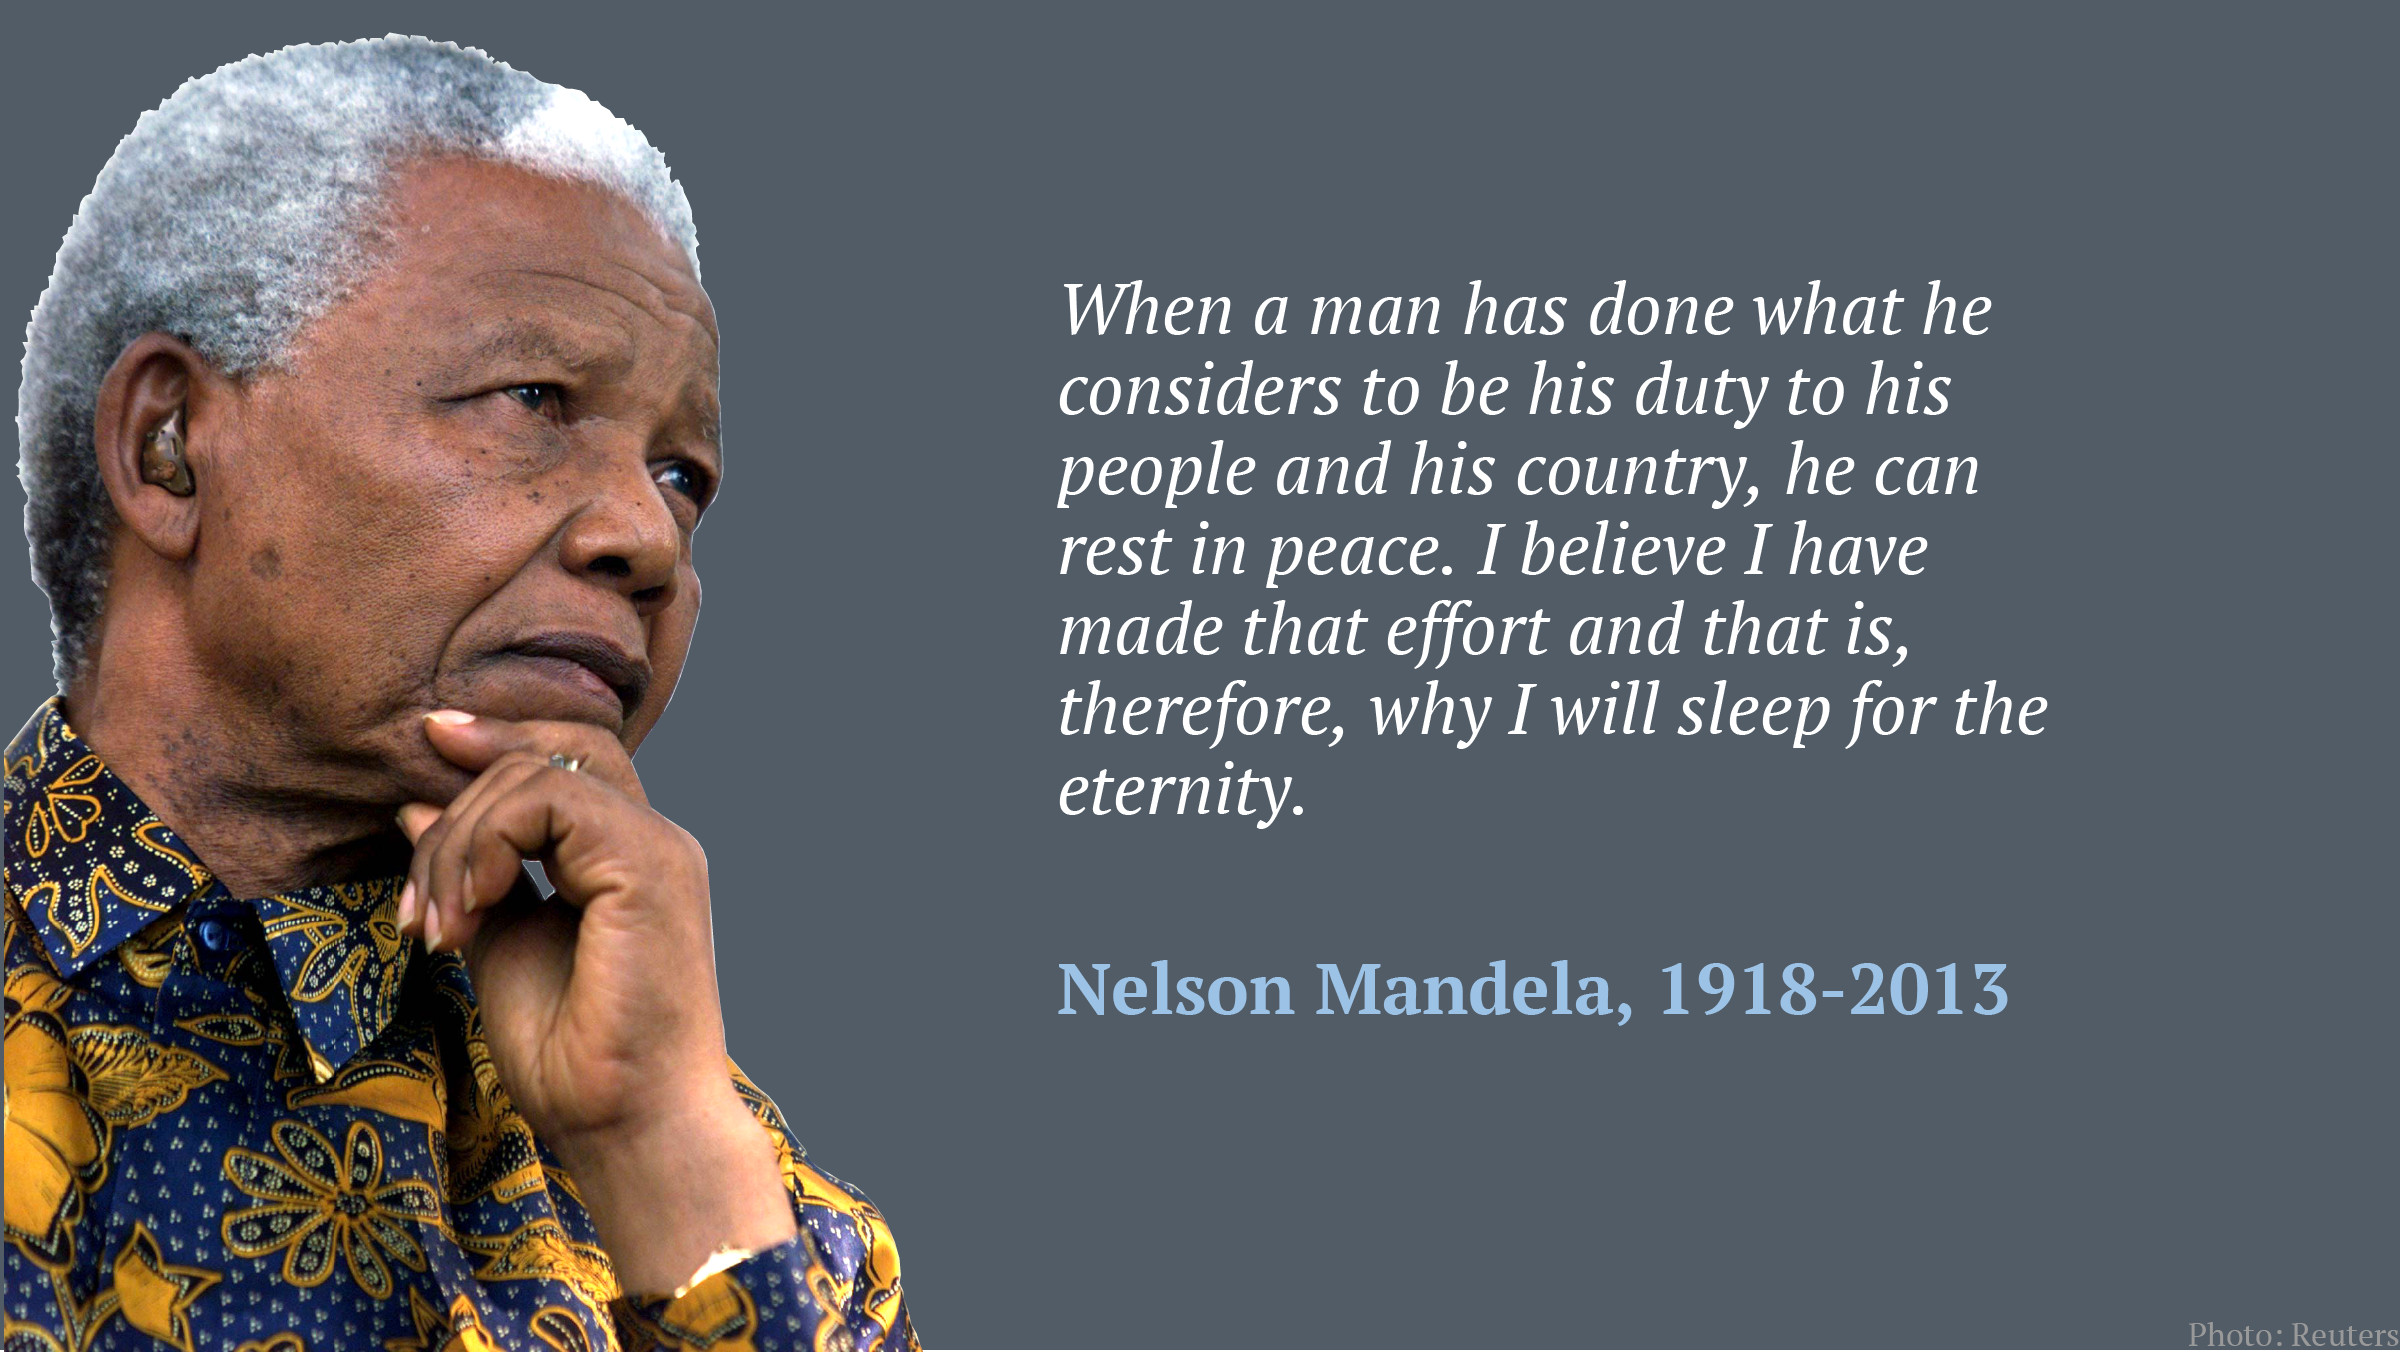 Famous Leadership Quotes  The wisdom of Nelson Mandela quotes from the most